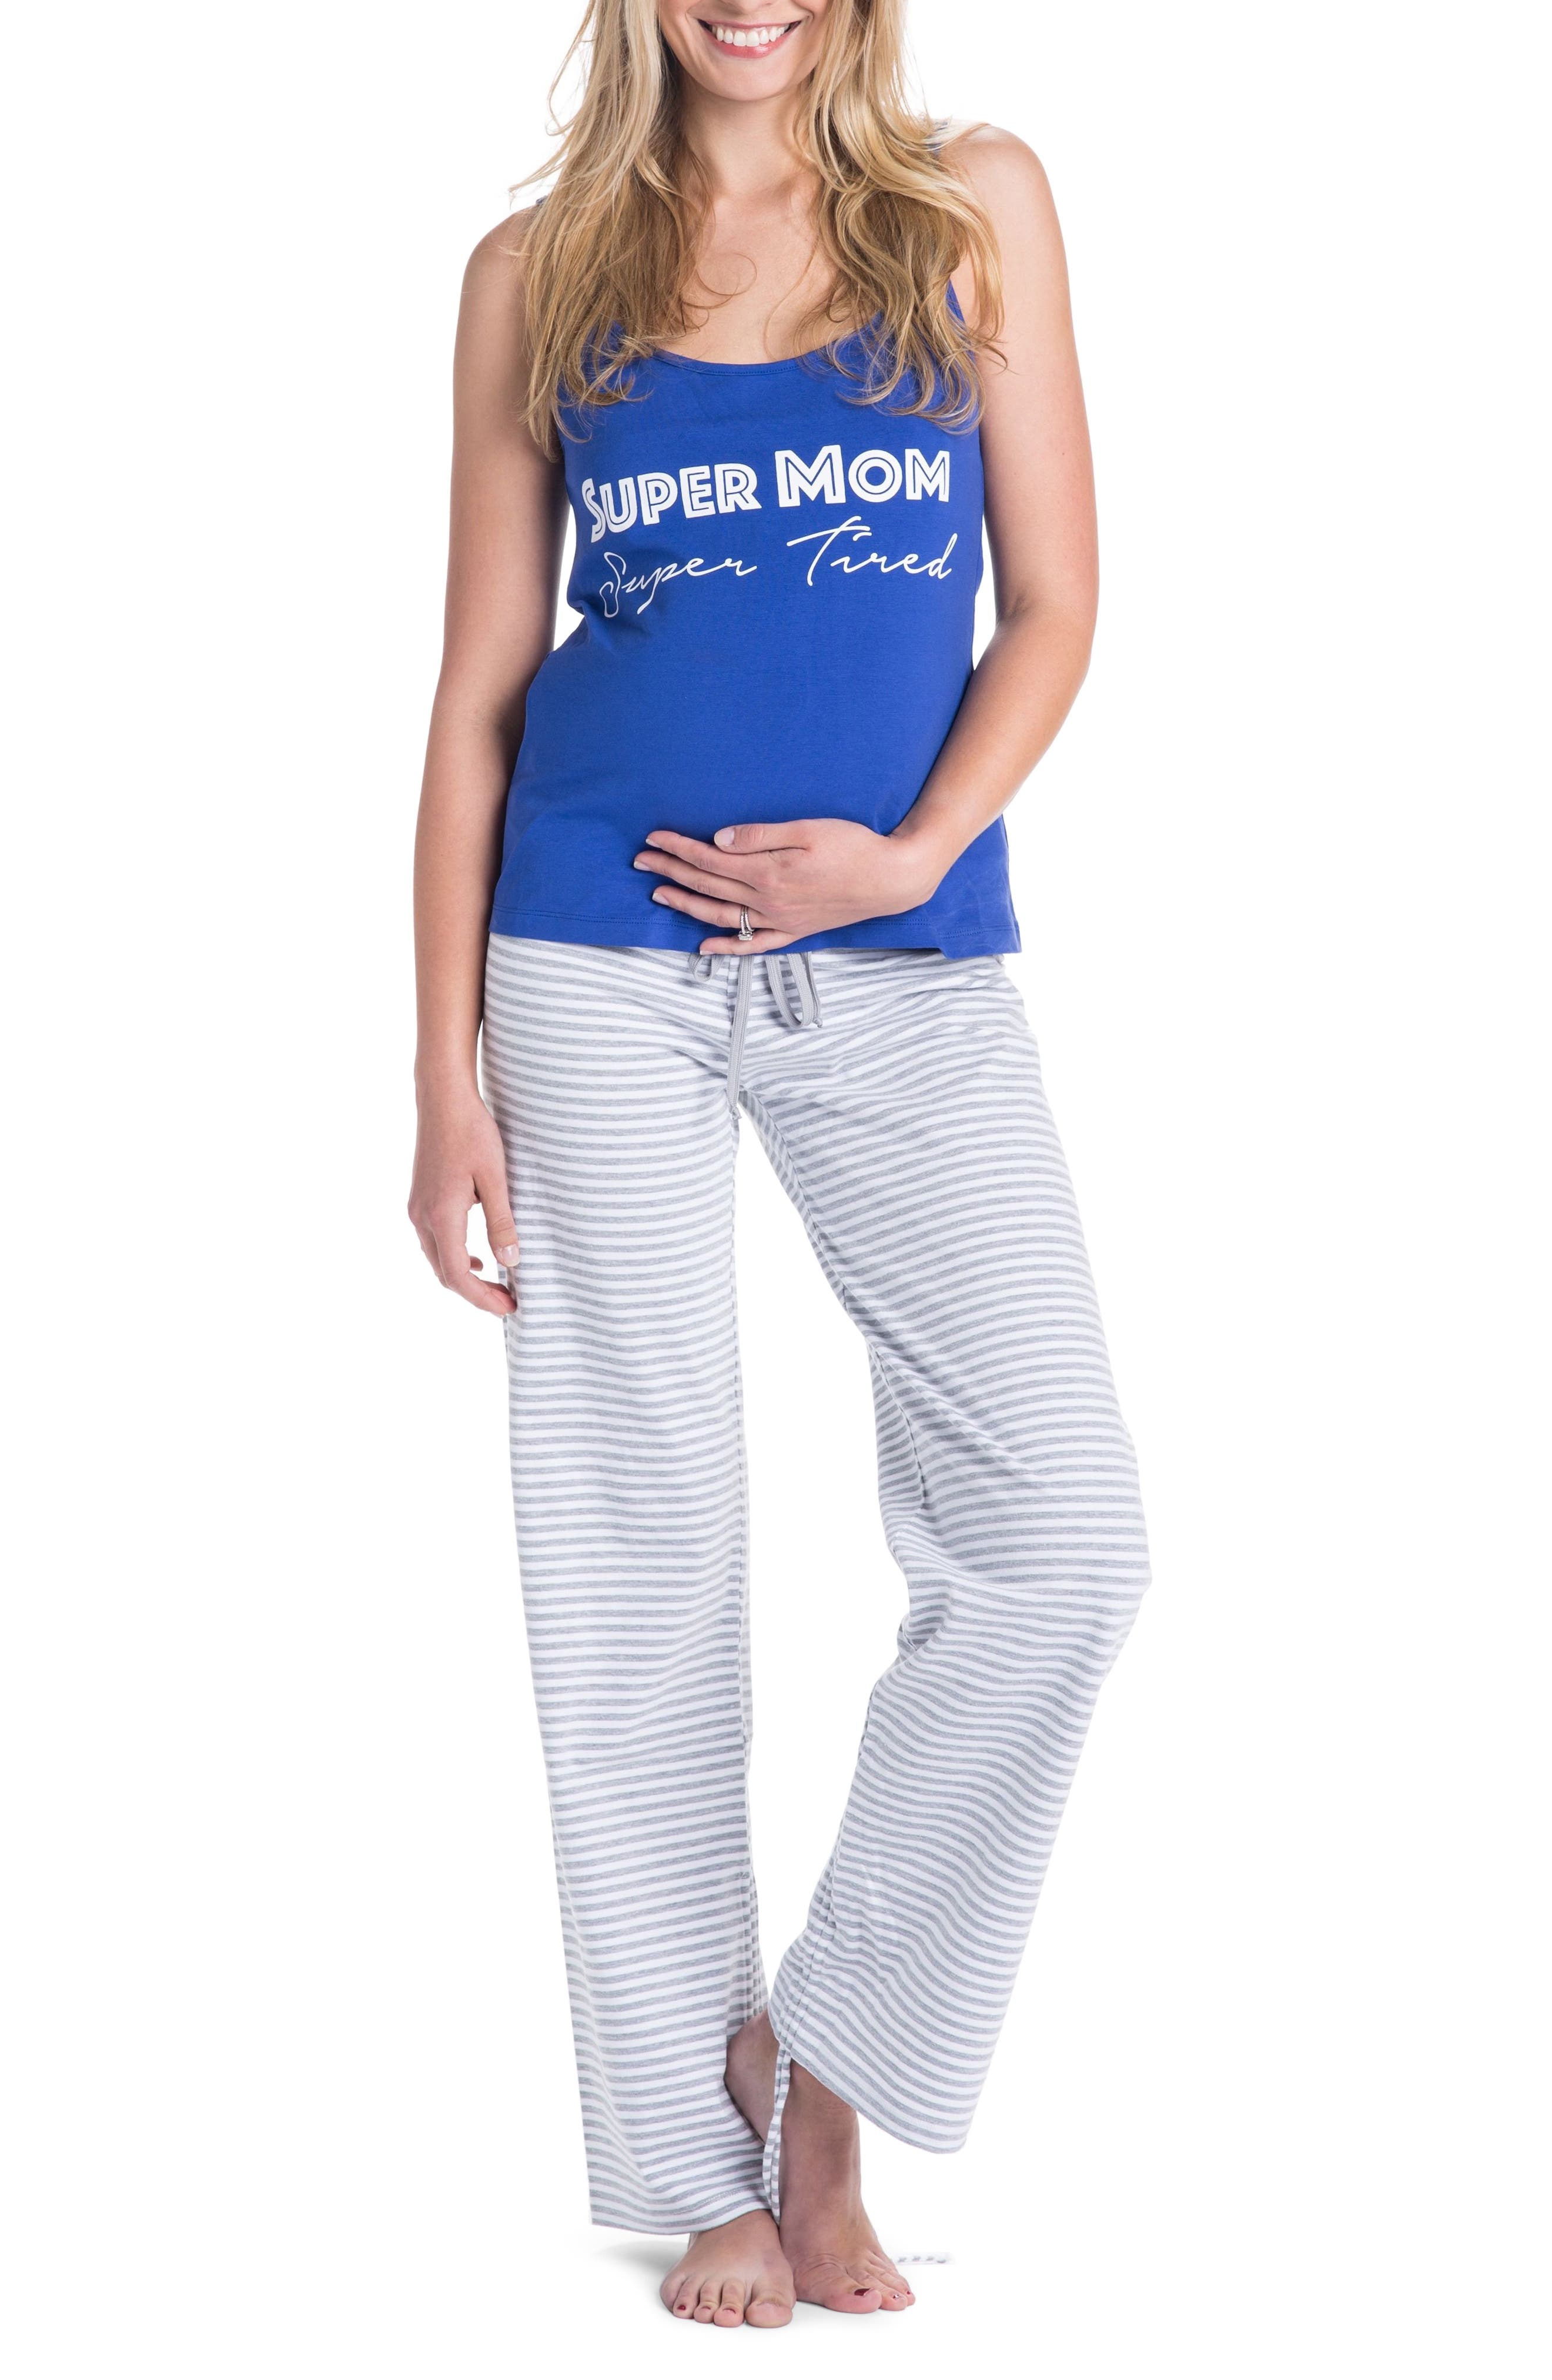 Trudy Super Mom Maternity/Nursing Pajamas,                         Main,                         color, Navy Blue/ Gray/ White Stripes